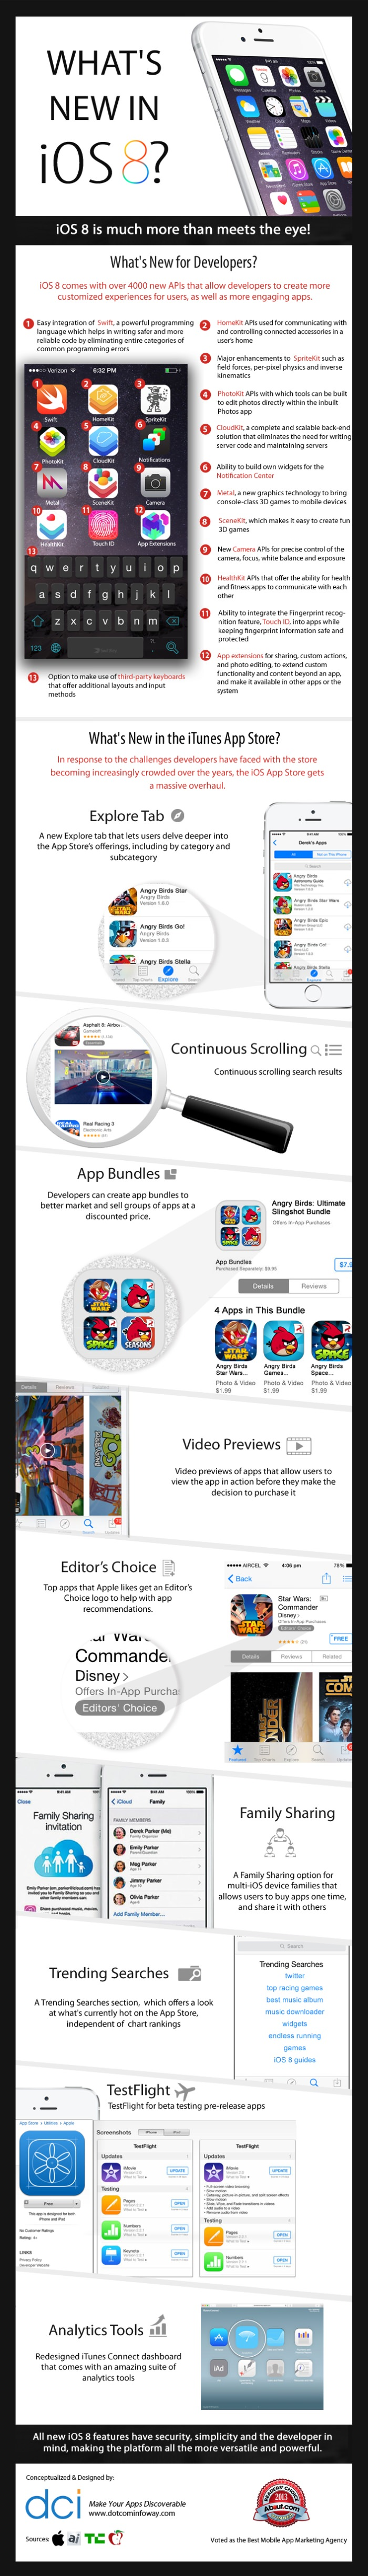 new in ios8 for developers infographic